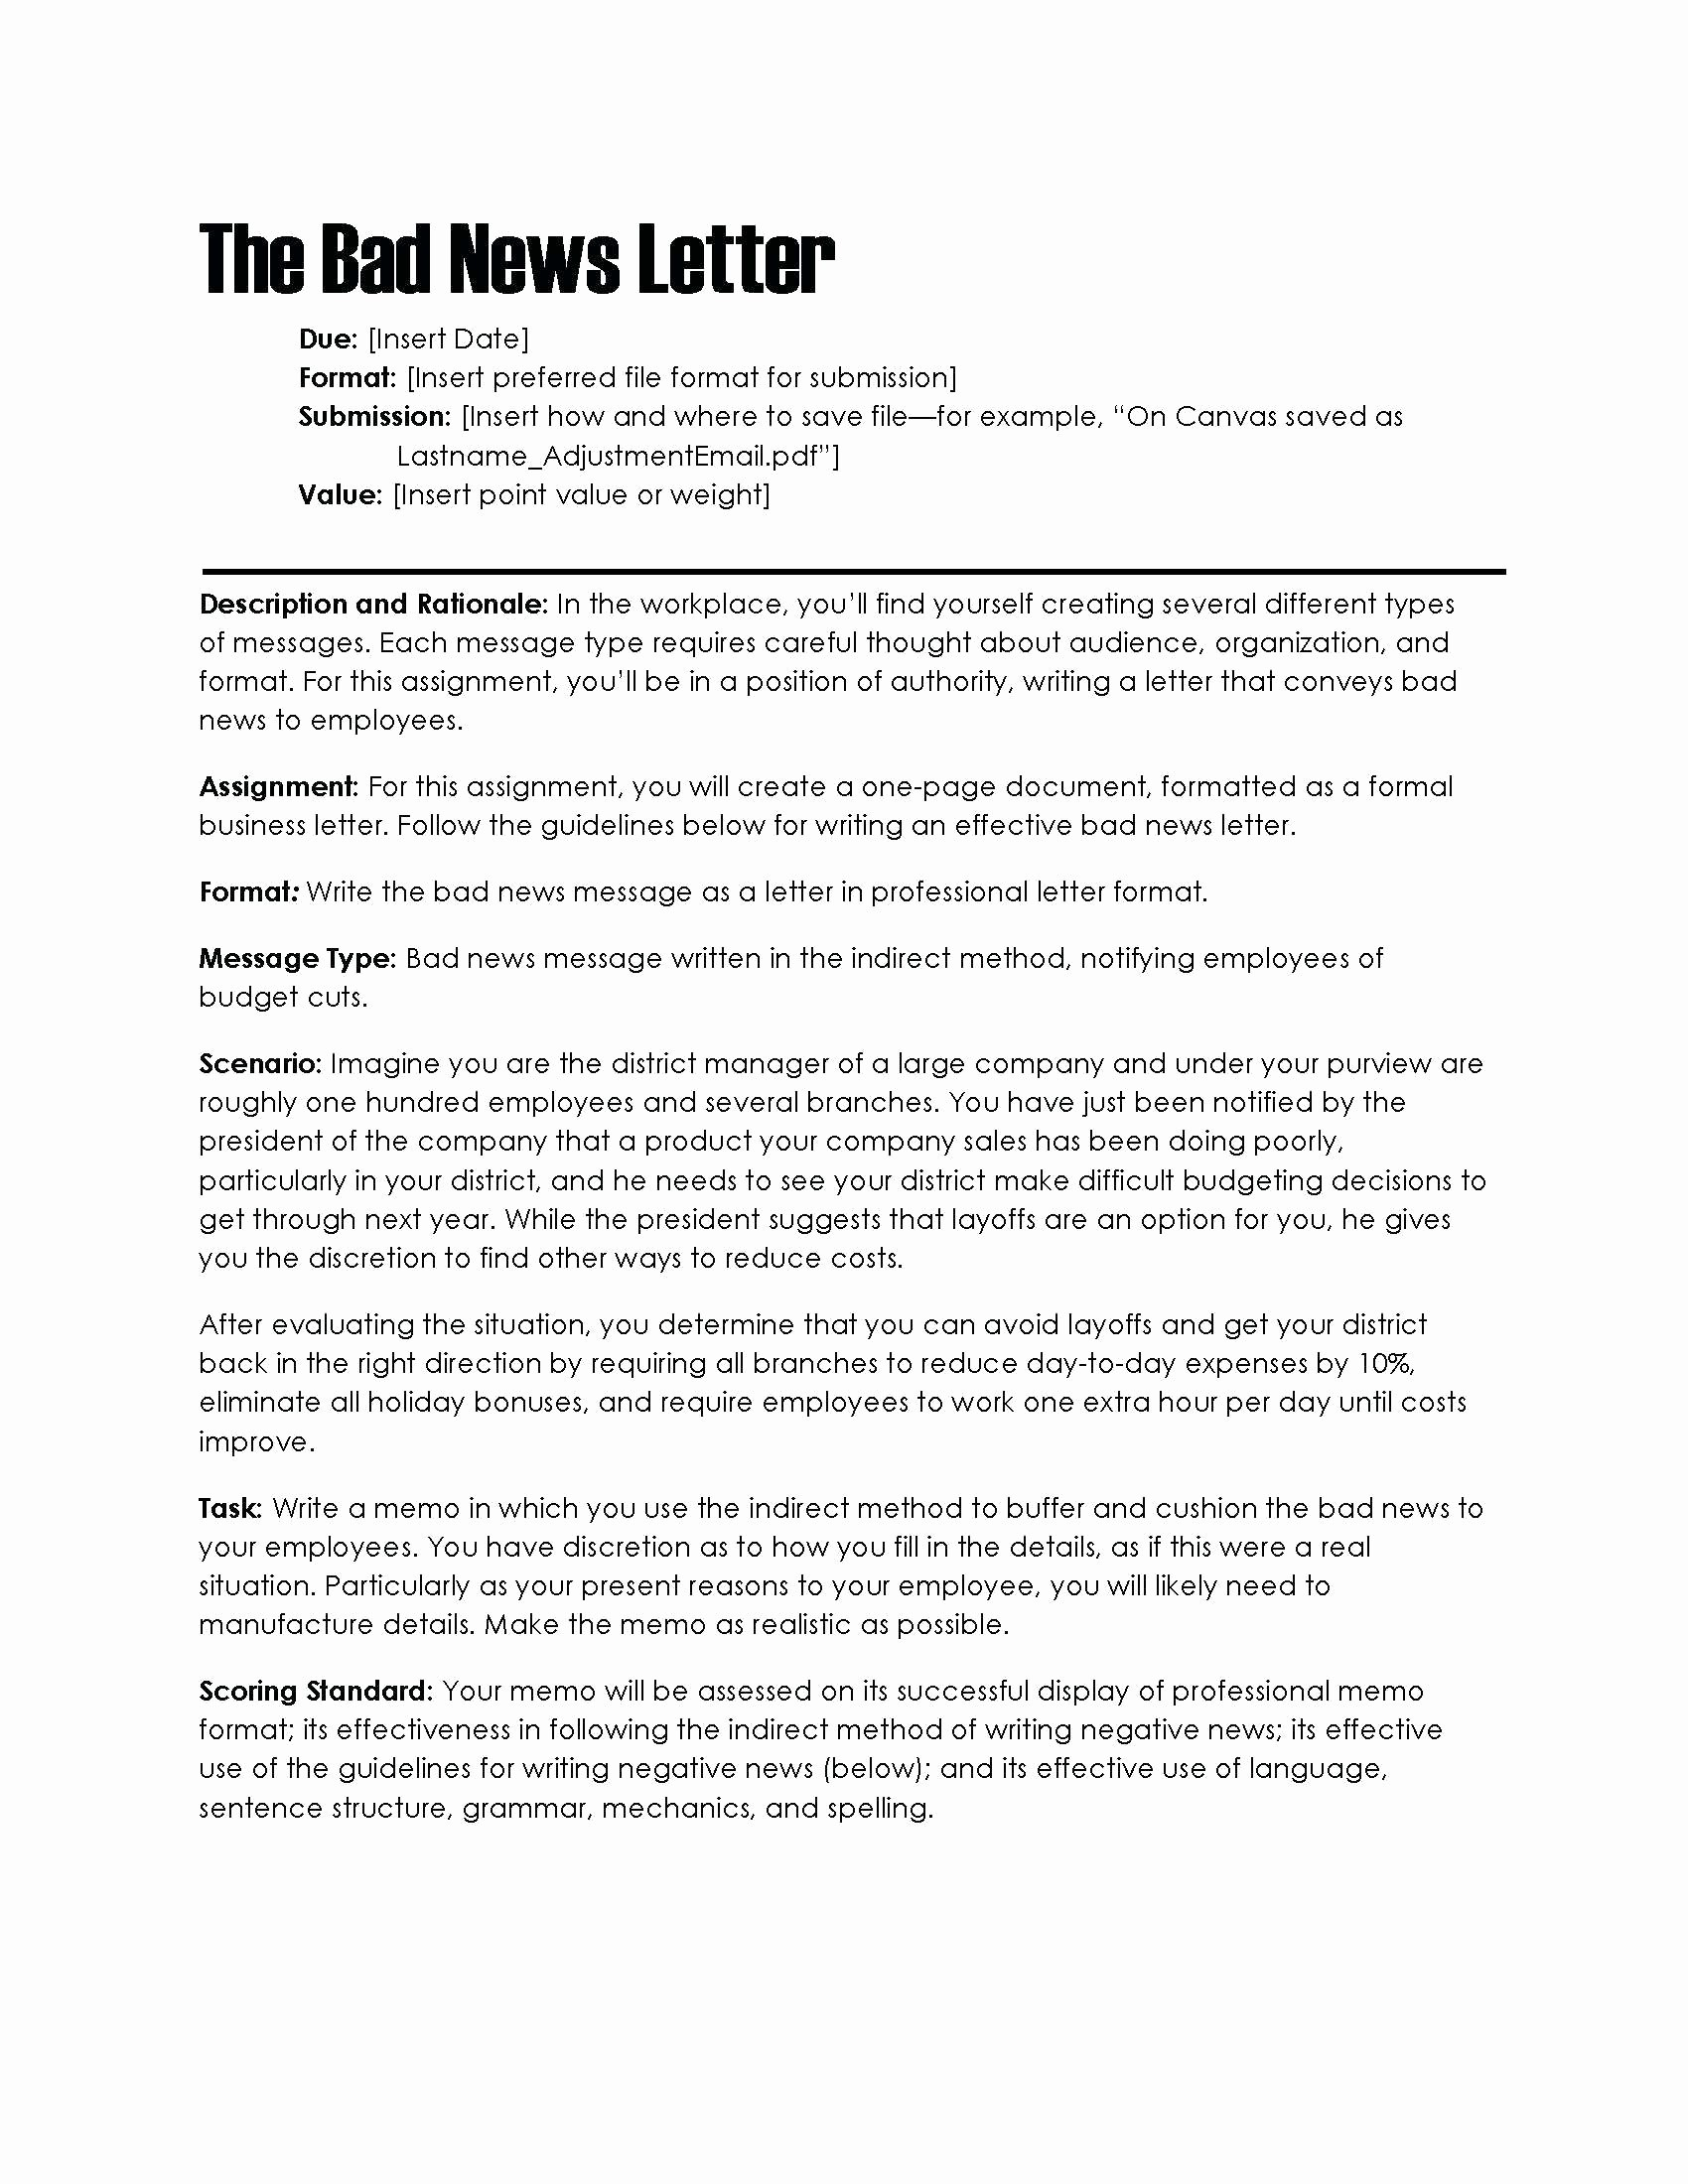 Free Syllabus Template for Teachers Lovely Template Course Syllabus Template for Teachers